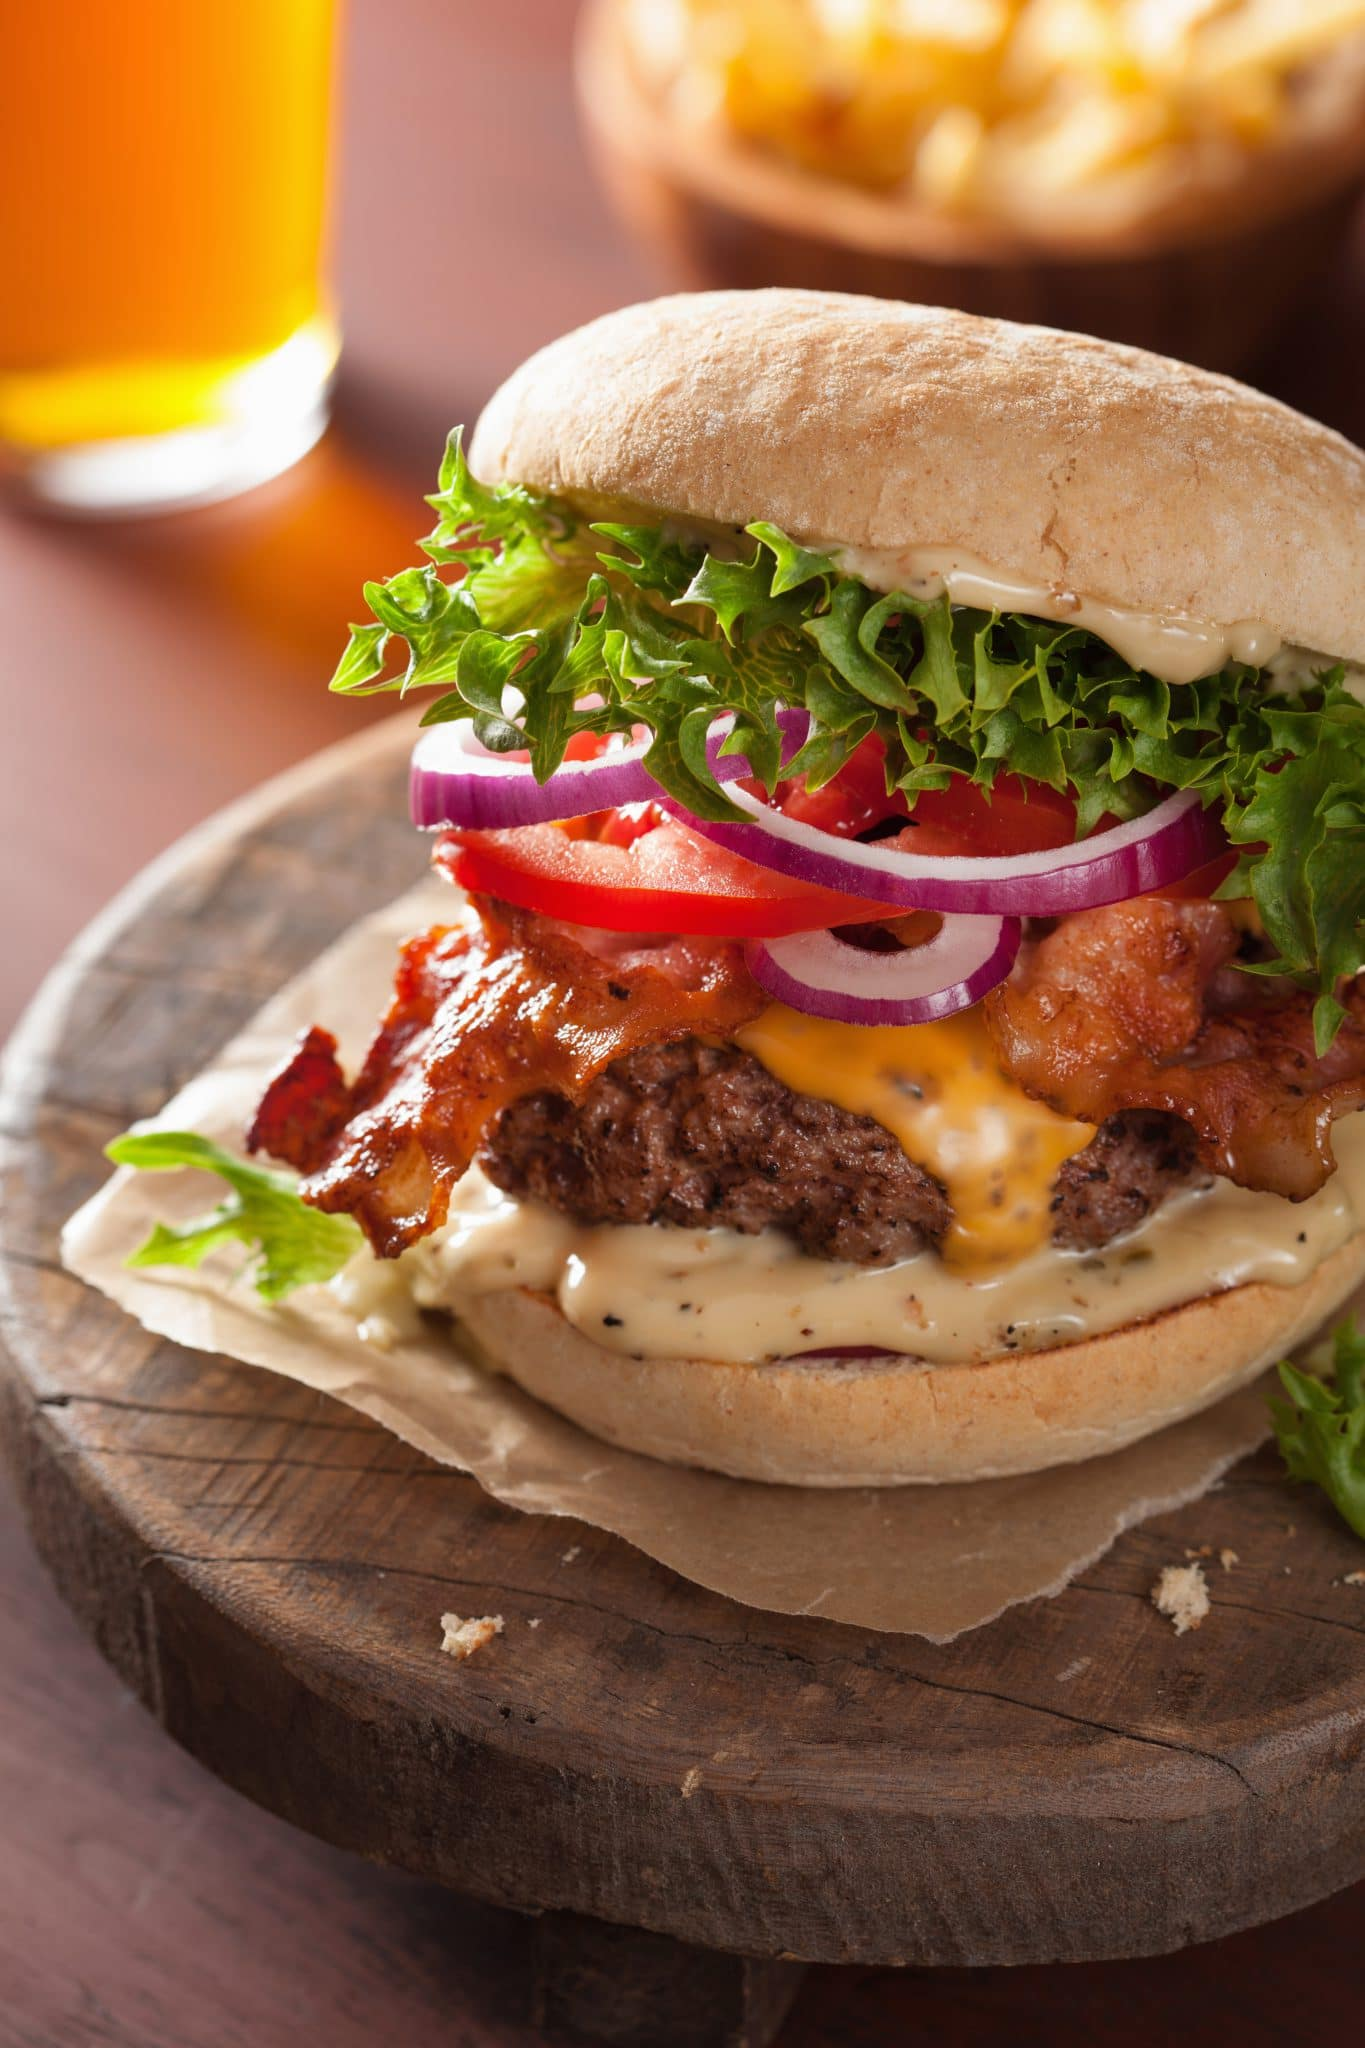 bacon-cheese-burger-with-beef-patty-tomato-onion-PKWD5R3